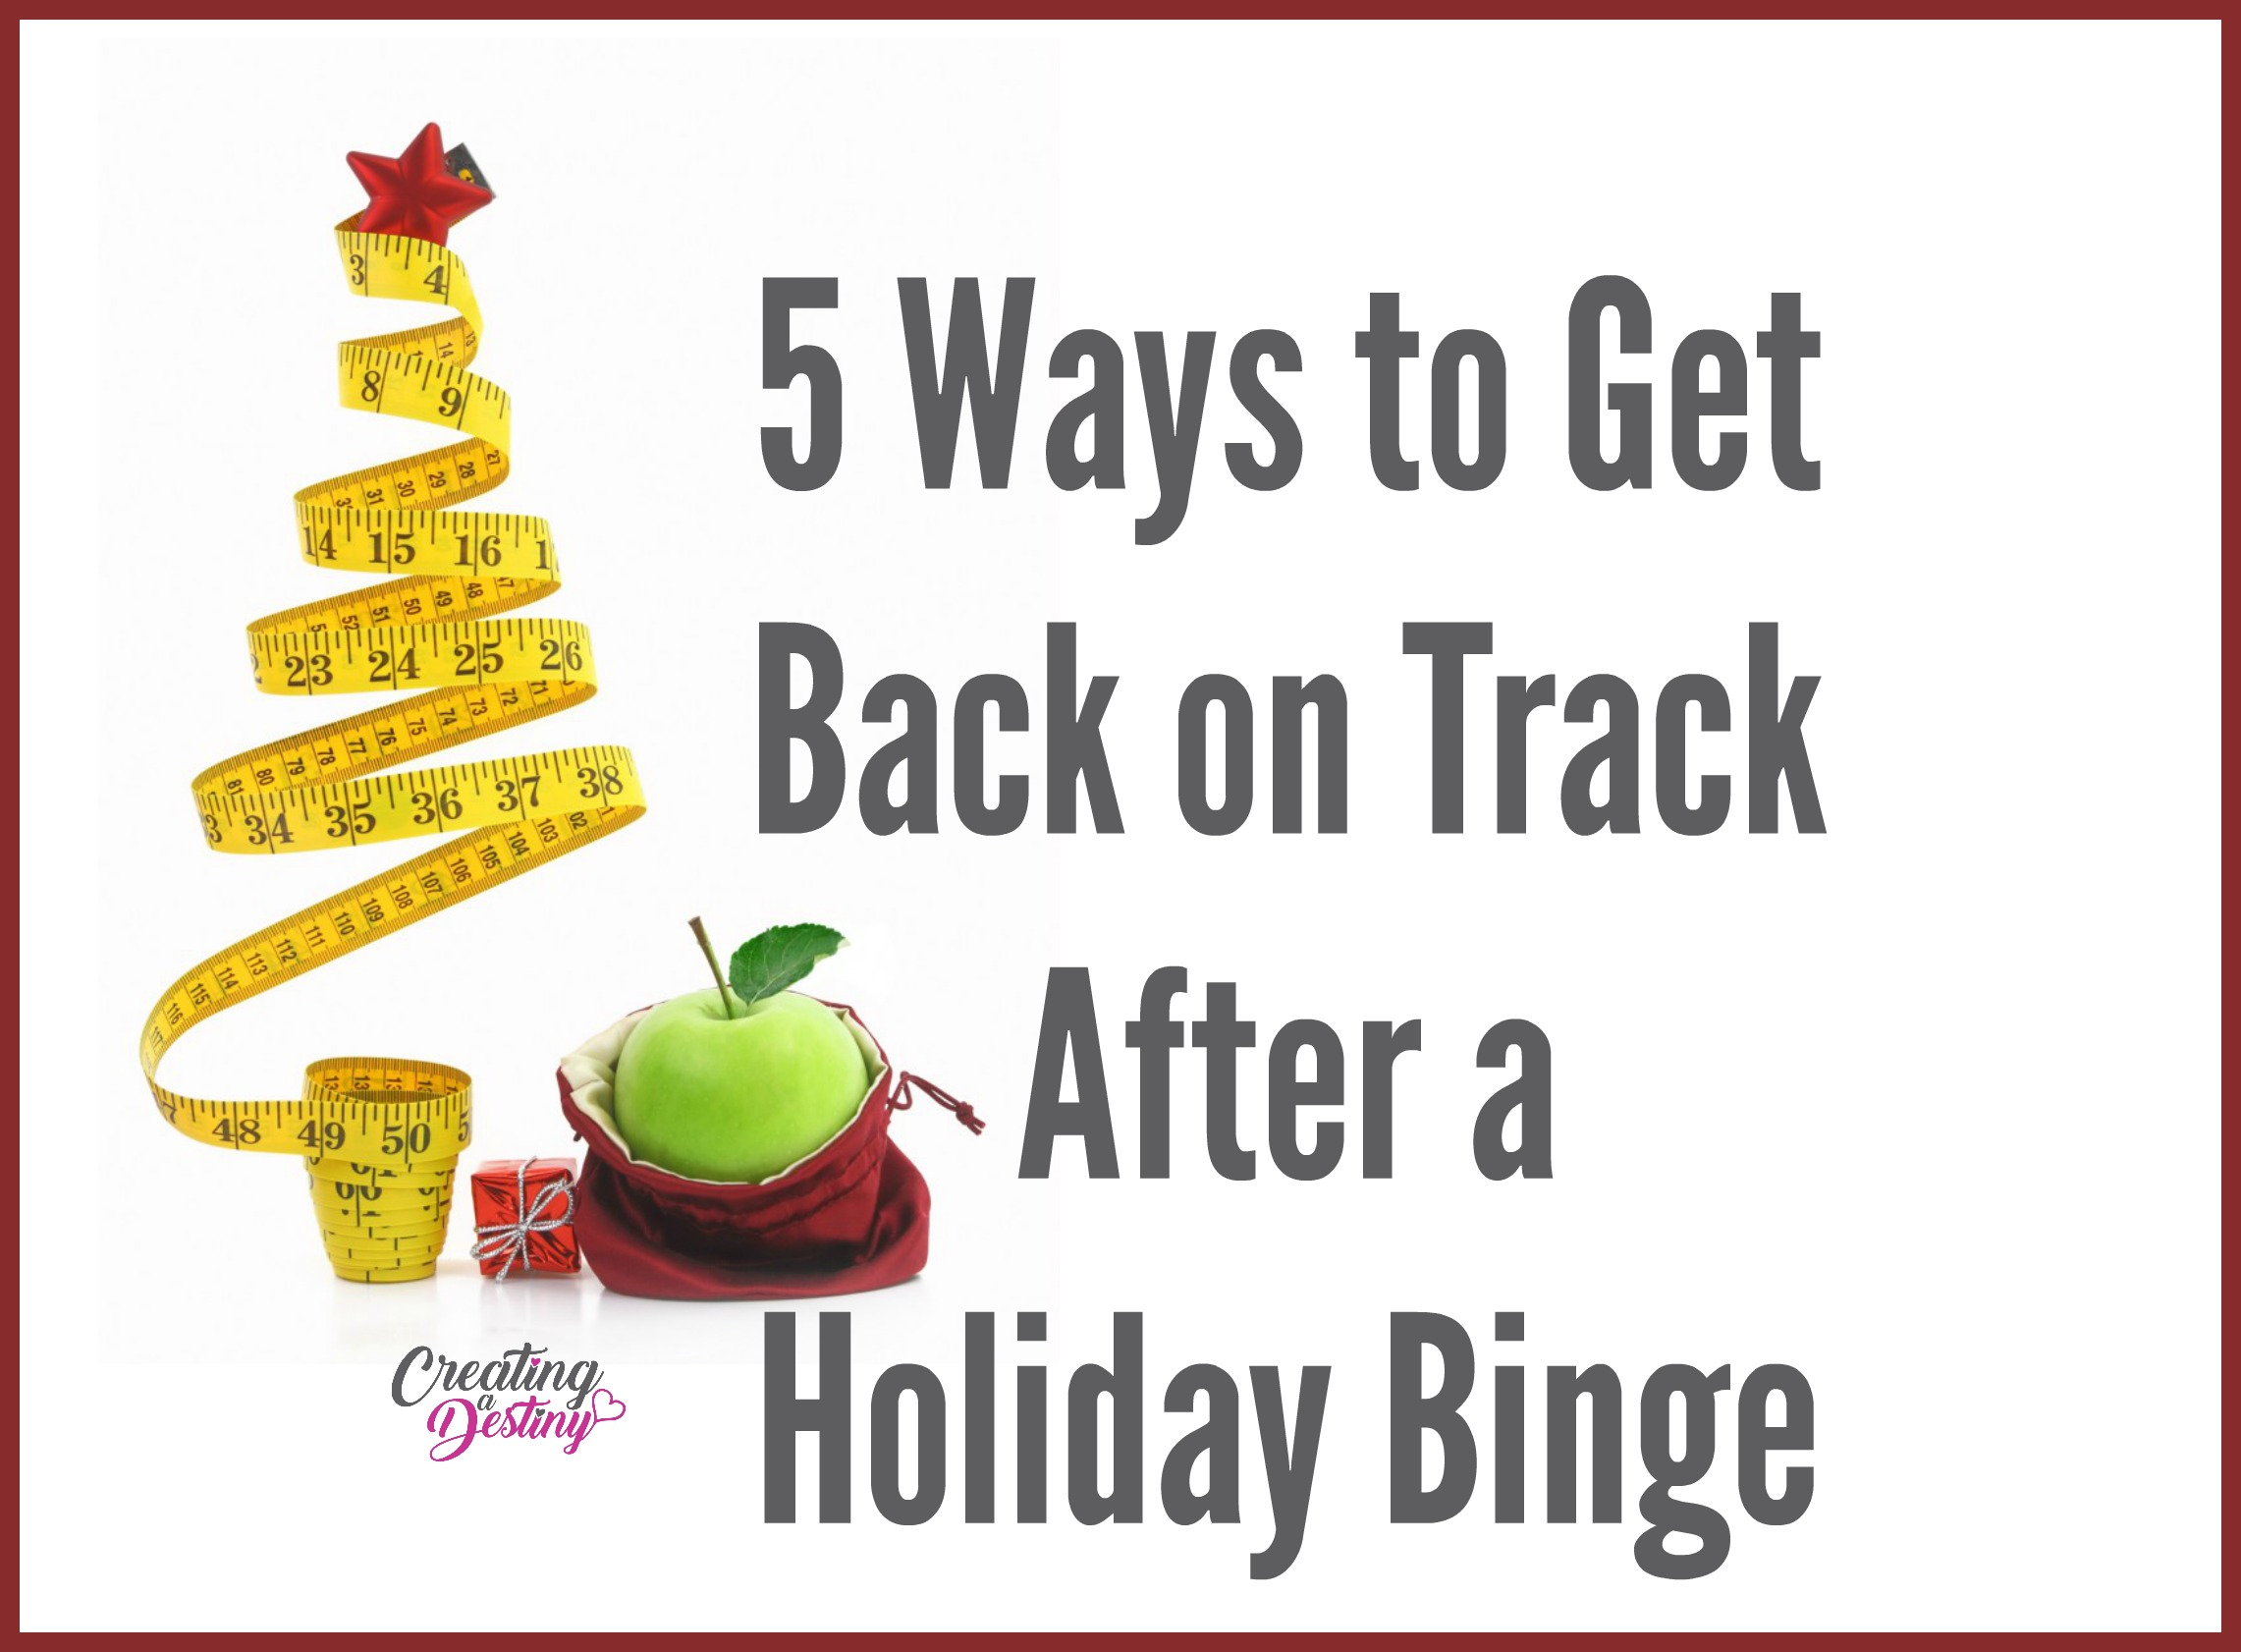 holiday-back-on-track-image